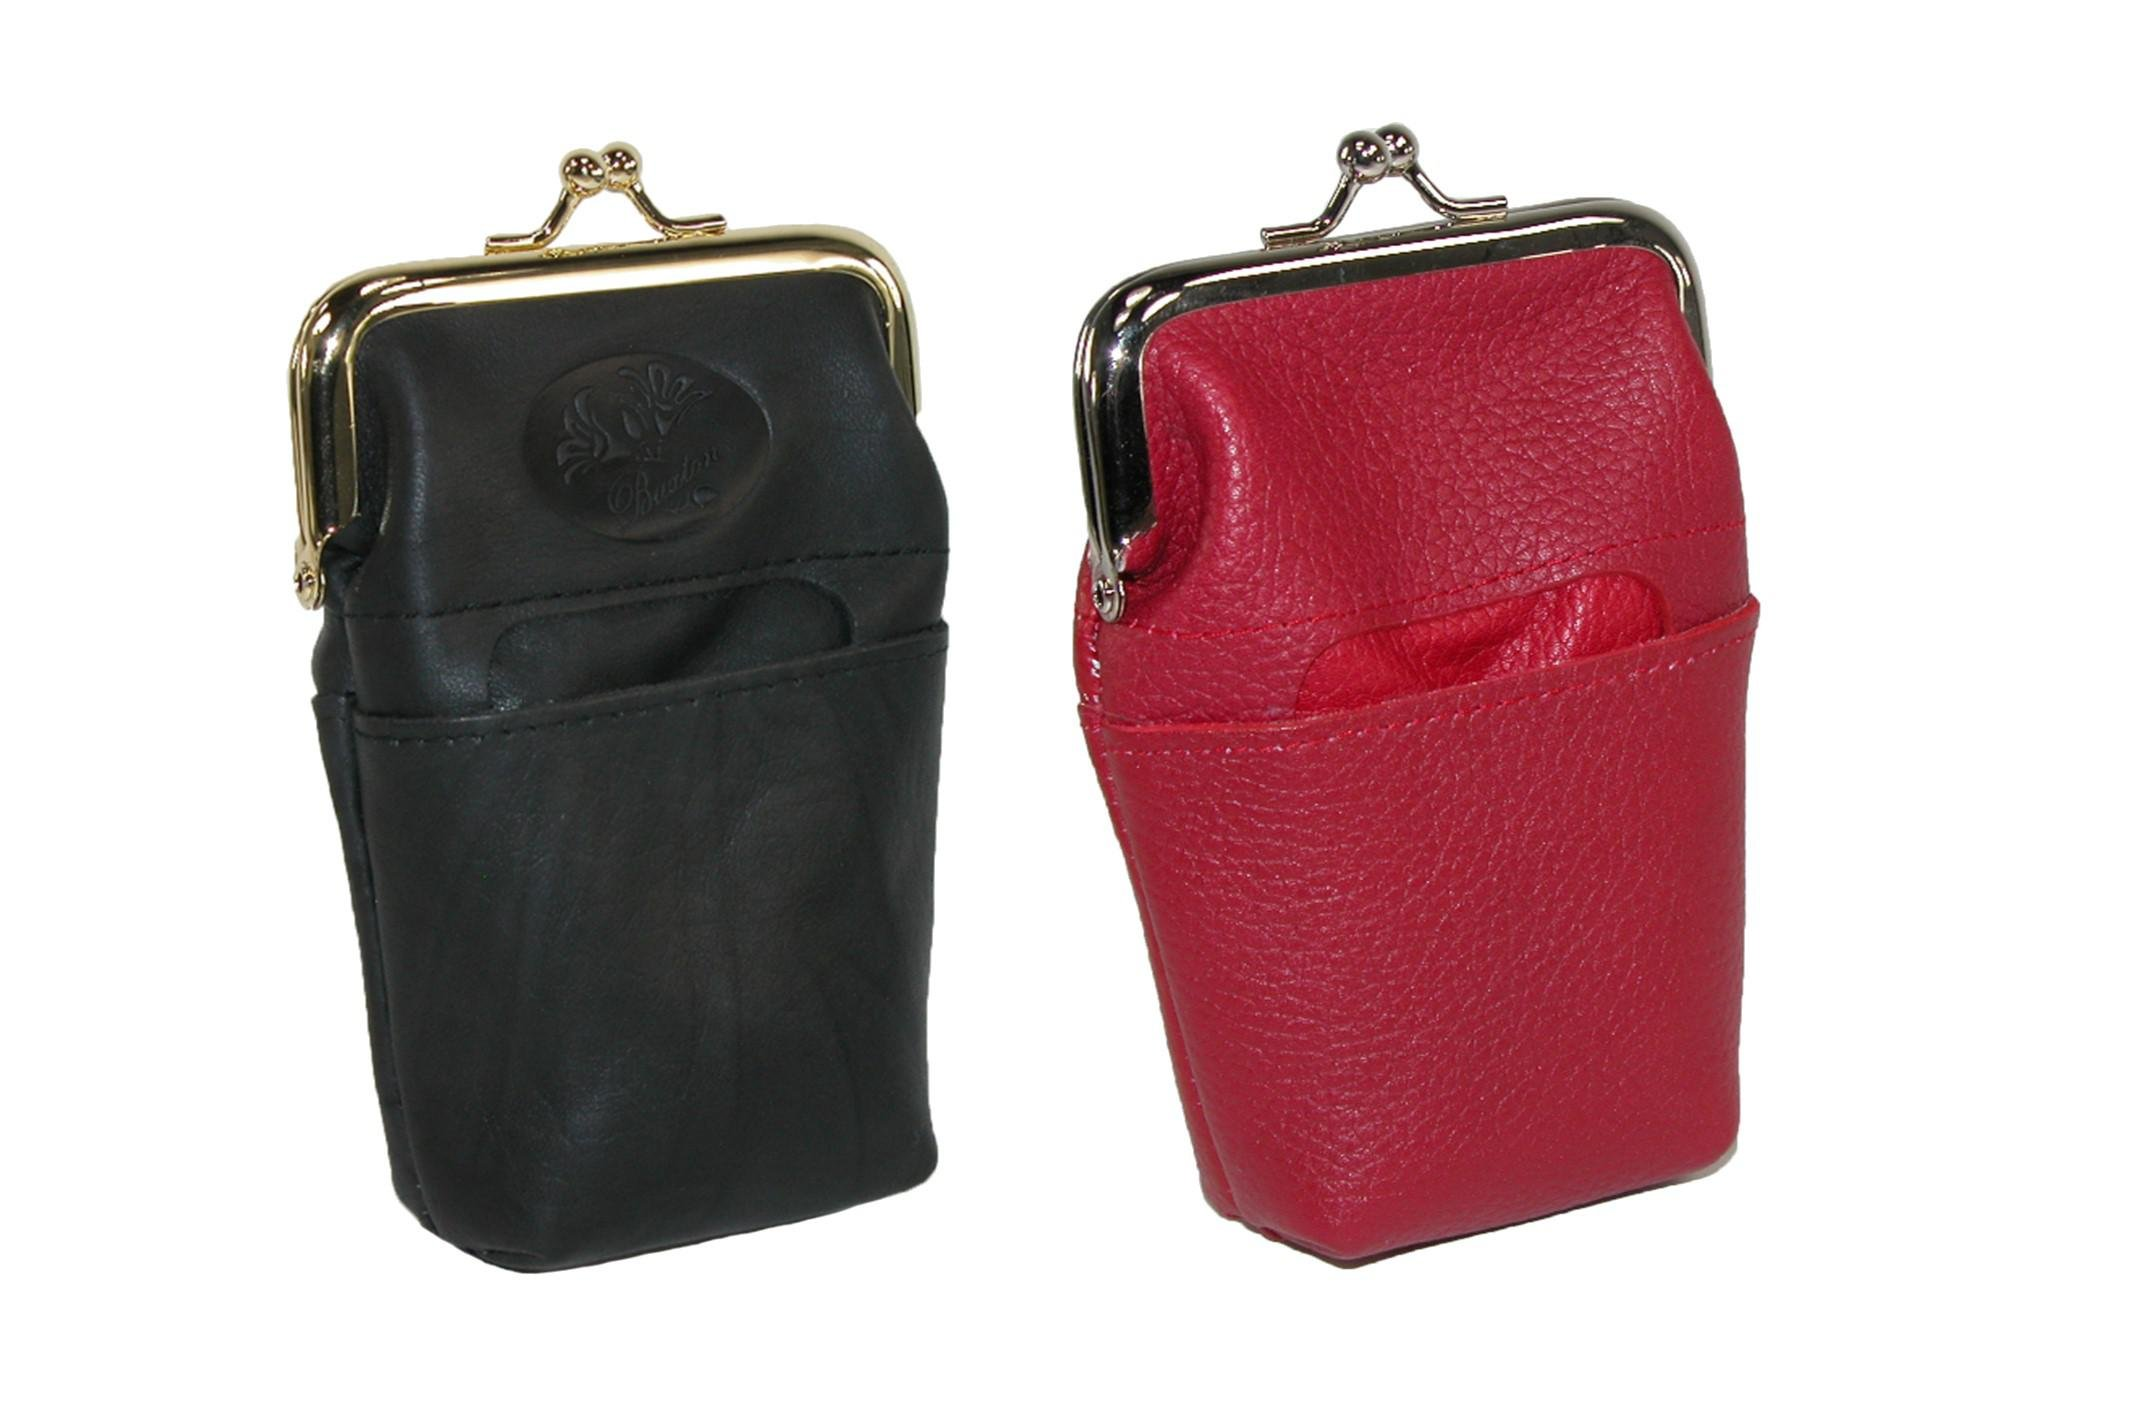 Buxton Women's Leather Basic & Fashion Framed Cigarette Cases (Pack of 2)